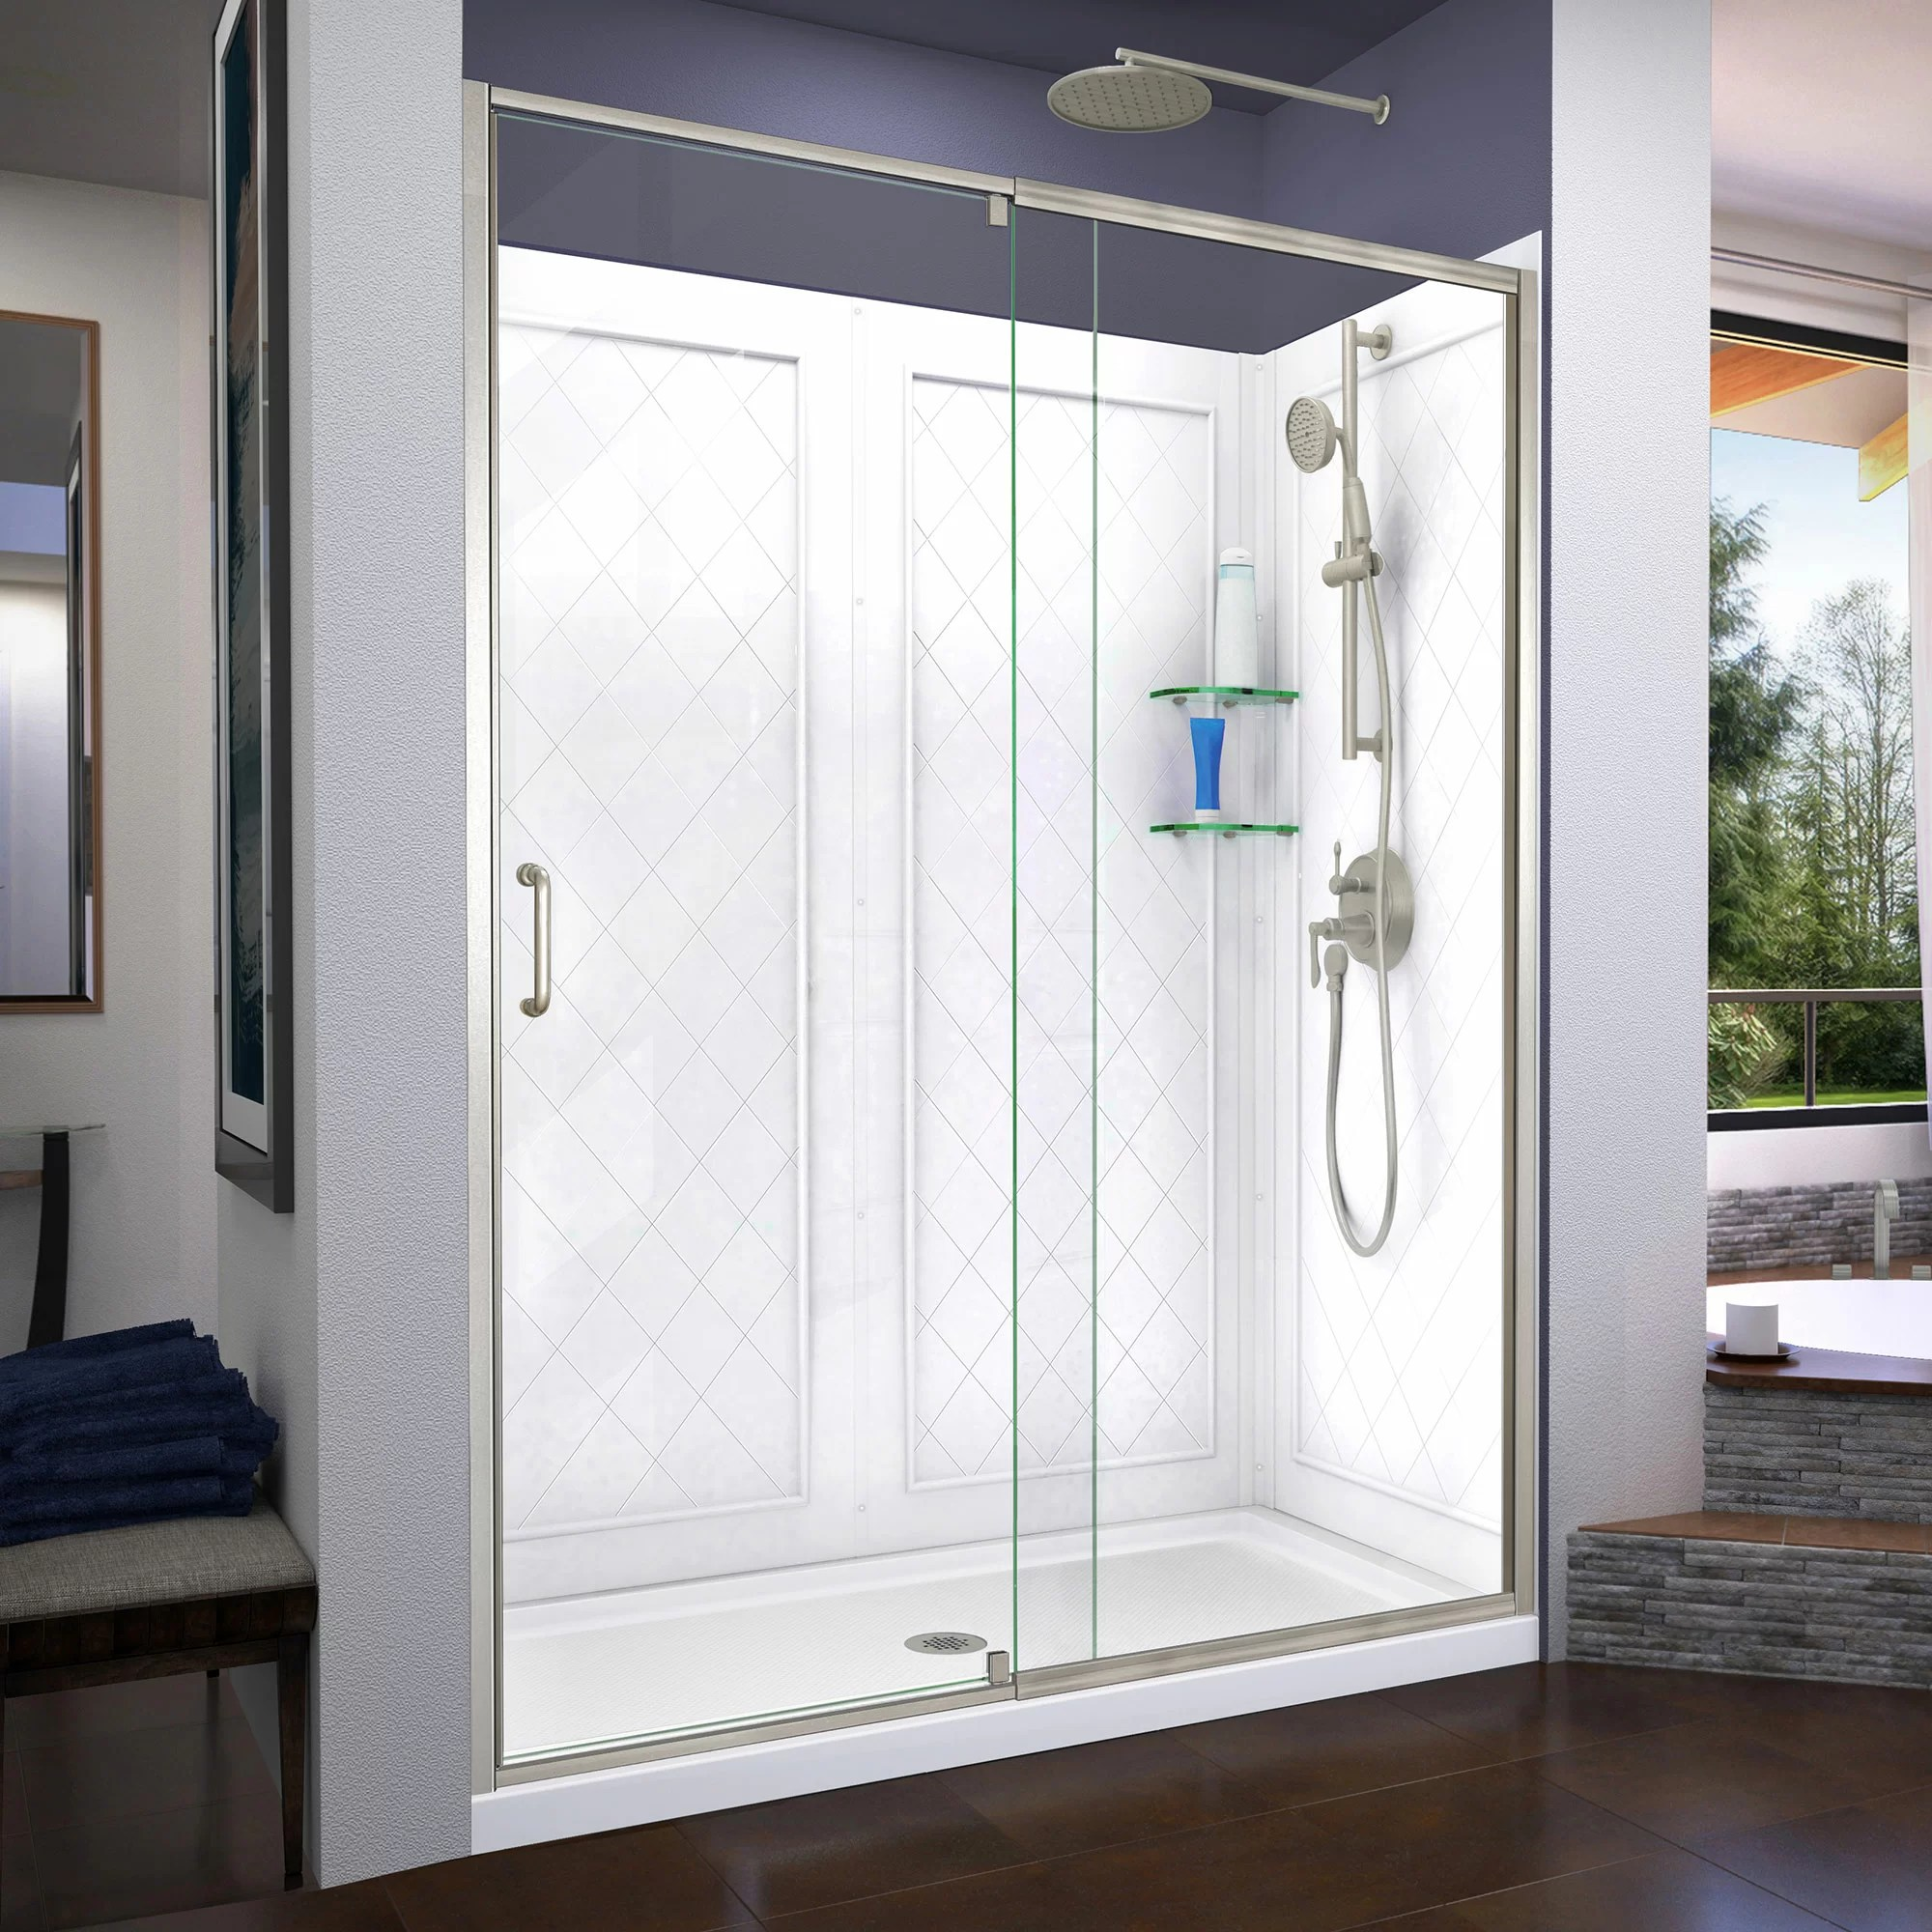 Semi Frameless Shower Door 60 X 76 75 Rectangle Pivot Shower Enclosure With Base Included